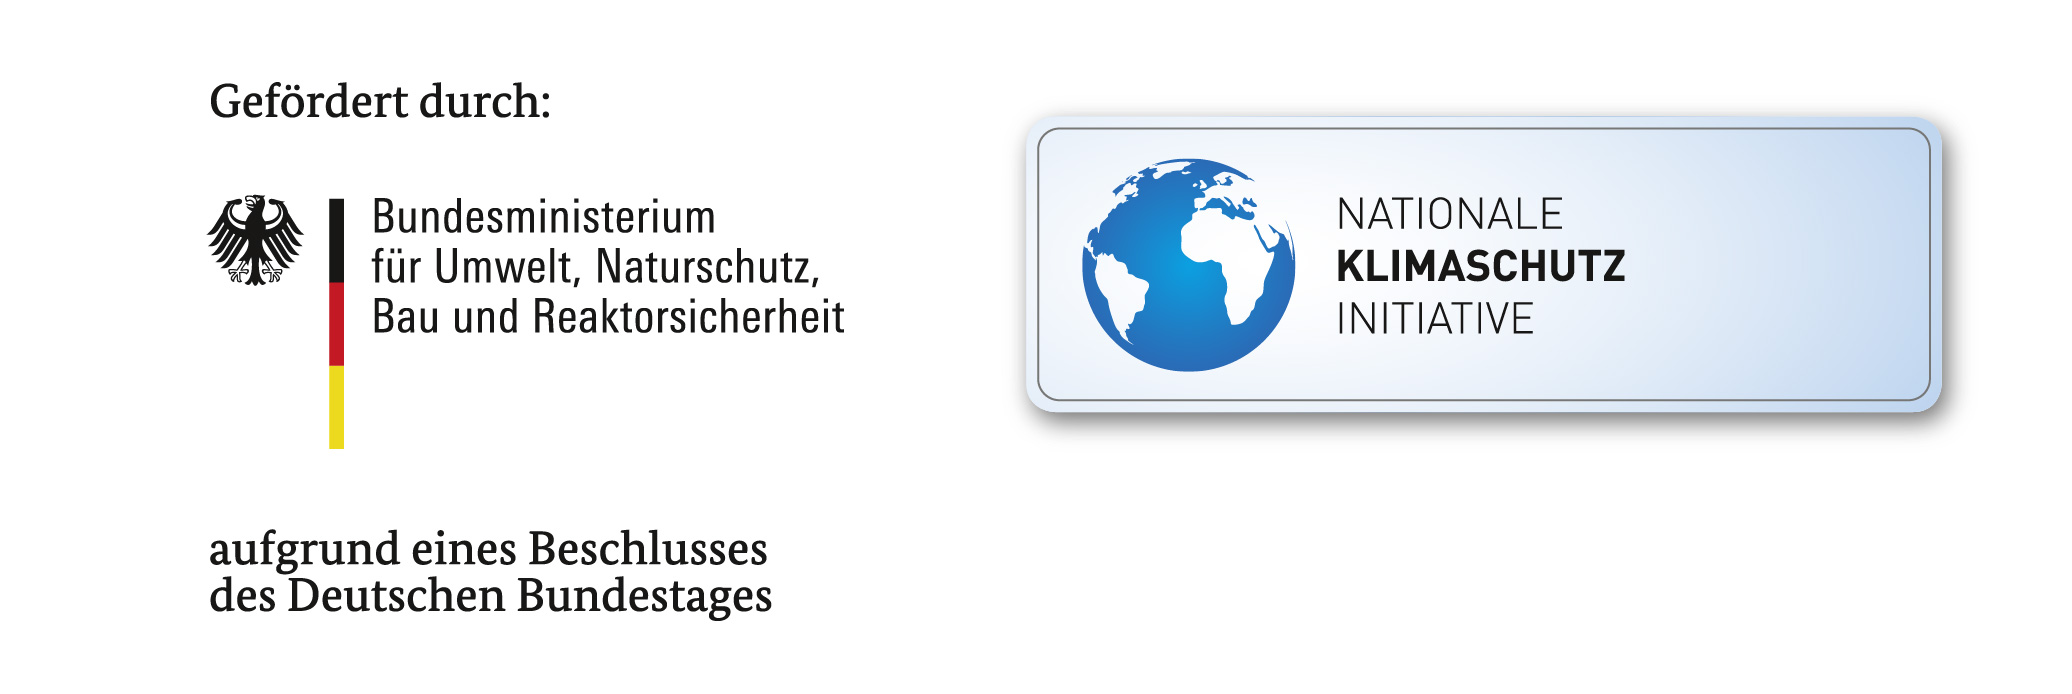 Logo des 'Bundesministerium für Umwelt, Naturschutz, Bau und Reaktorsicherheit aufgrund eines Beschlusses des Deutschen Bundestages', Quelle: https://secure.bmub.bund.de/service/publikationen/downloads/corporate-design-des-bmub/?no_cache=1